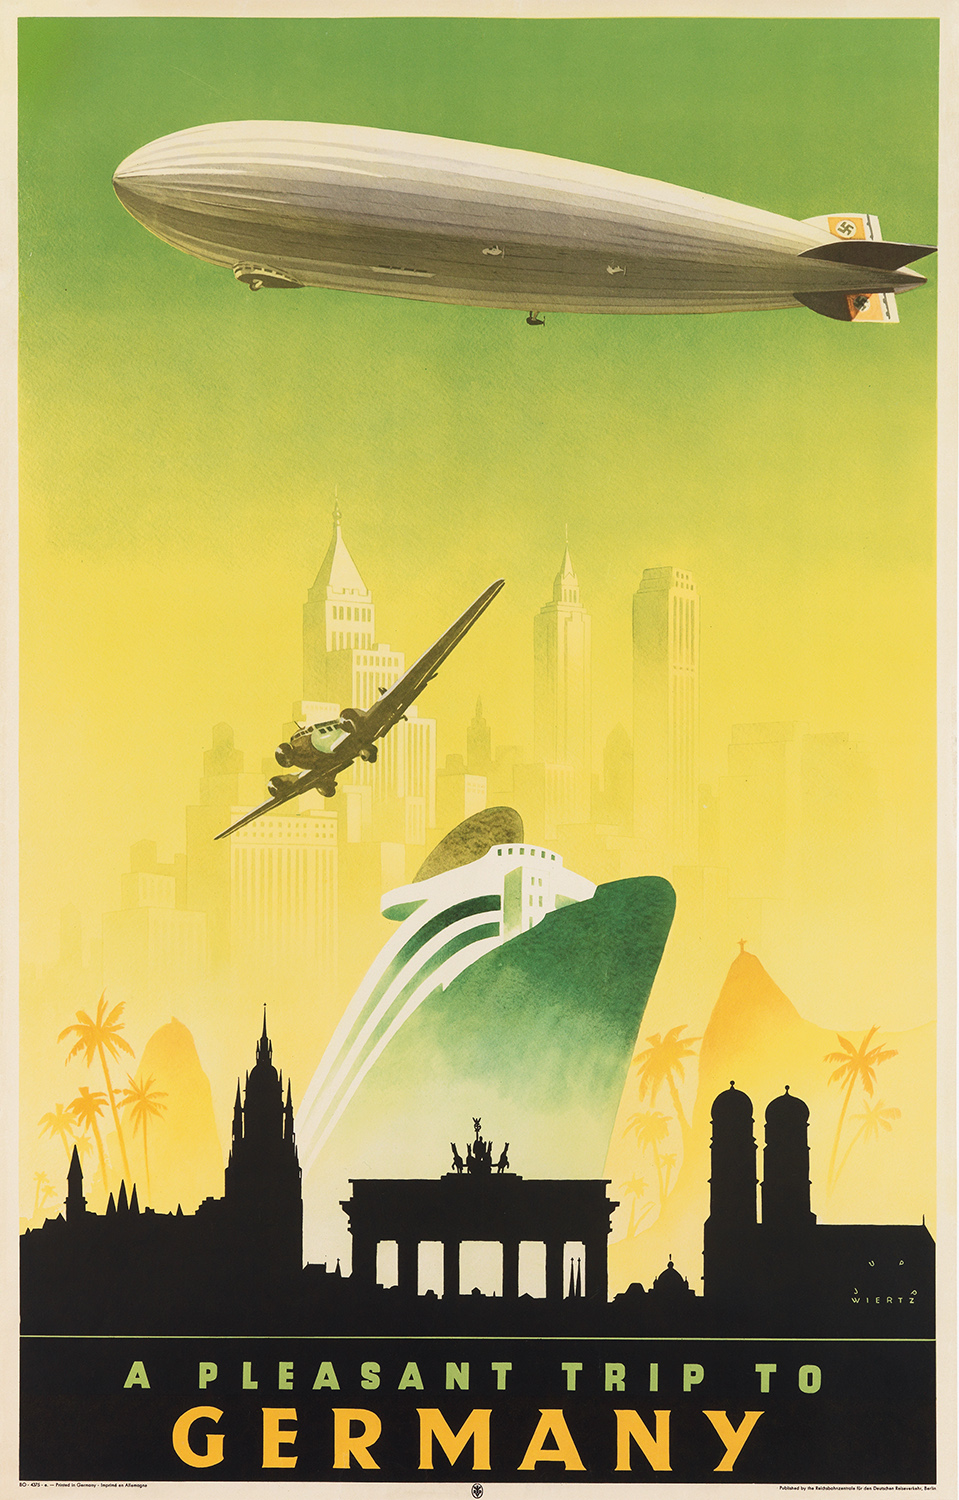 A Pleasant Trip to Germany, a travel poster created circa 1935 by Jupp Wiertz.